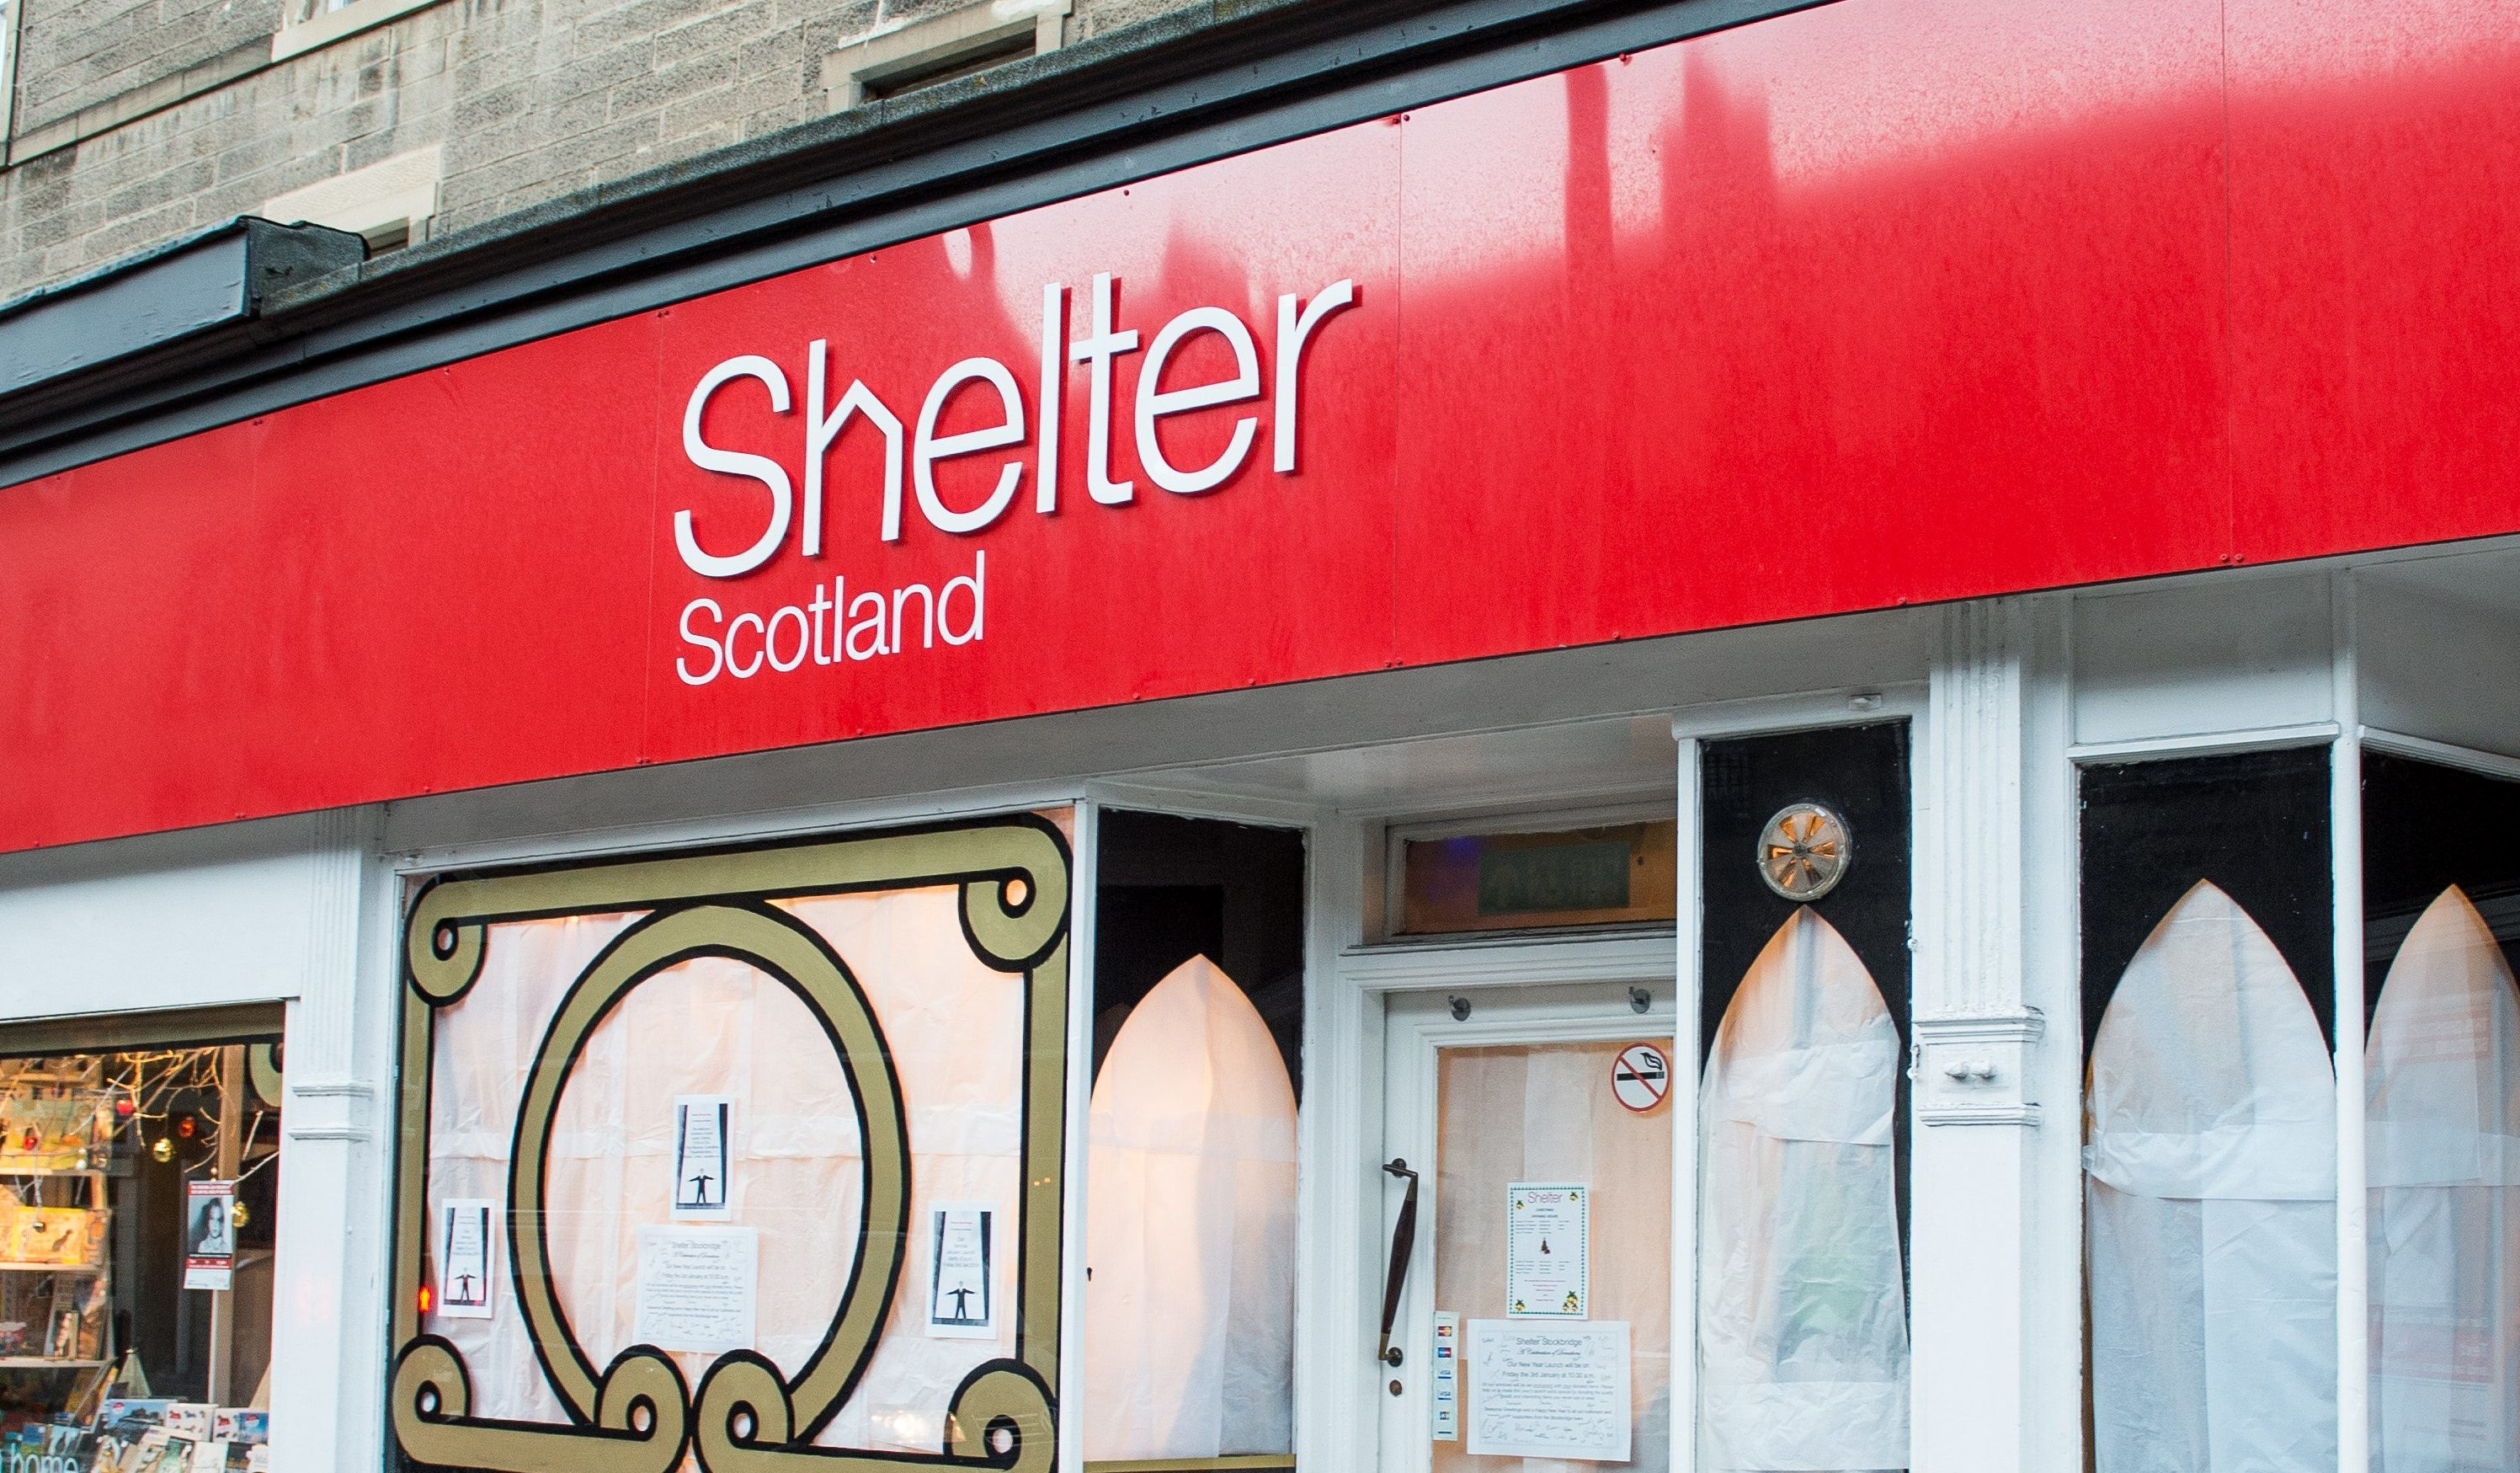 Perth And Kinross Leading The Way On Bring Empty Homes Into Use